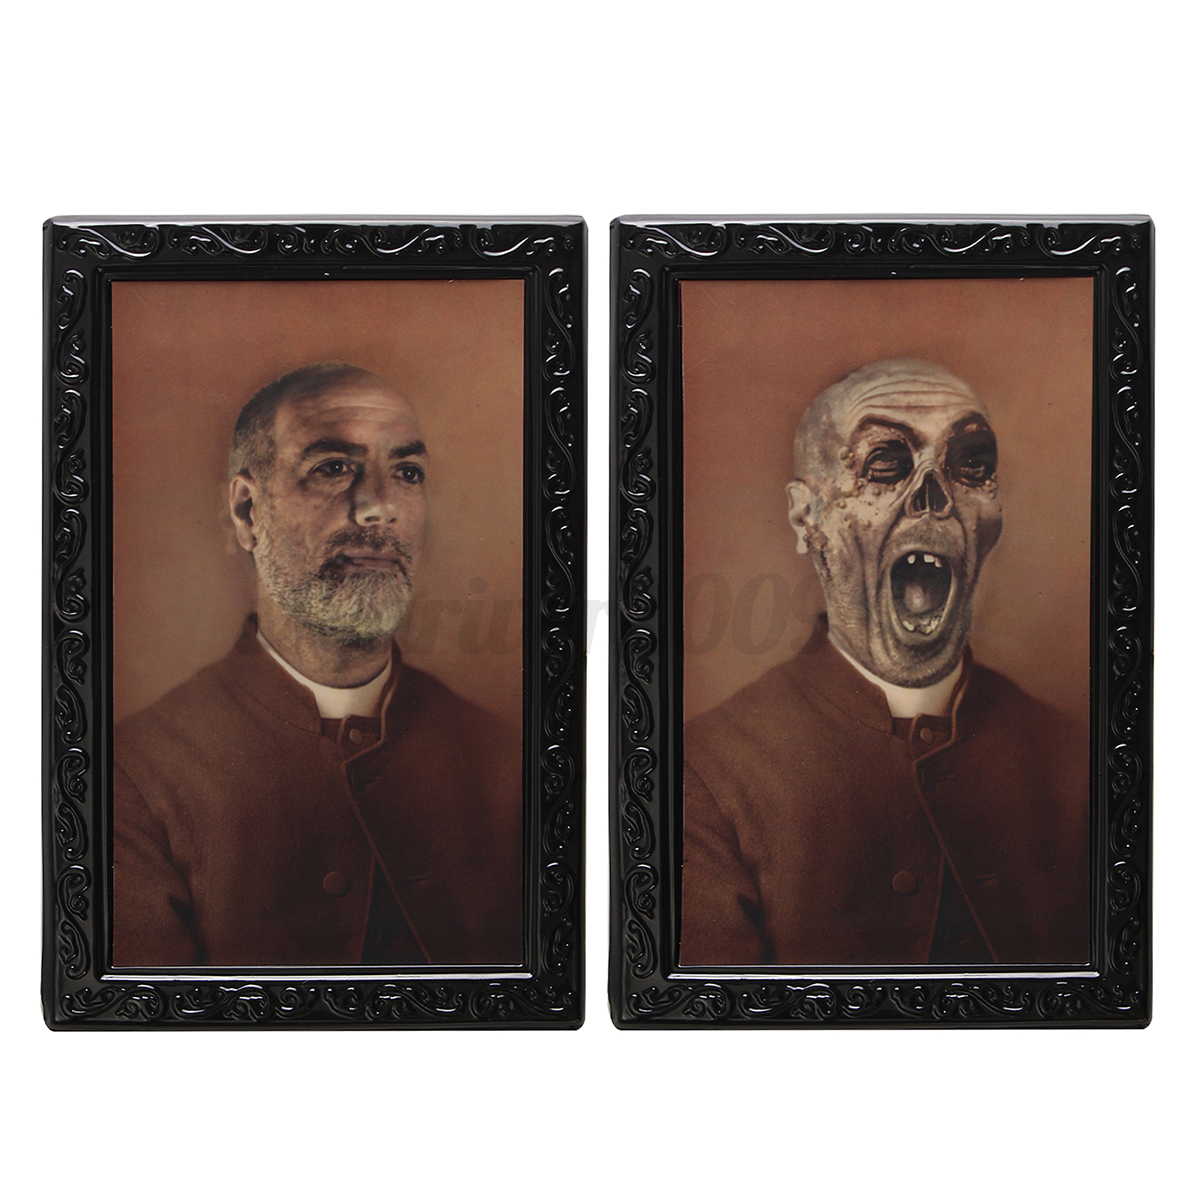 Horror halloween lenticular 3d changing haunted photo frame horror halloween lenticular 3d changing haunted photo frame jeuxipadfo Images